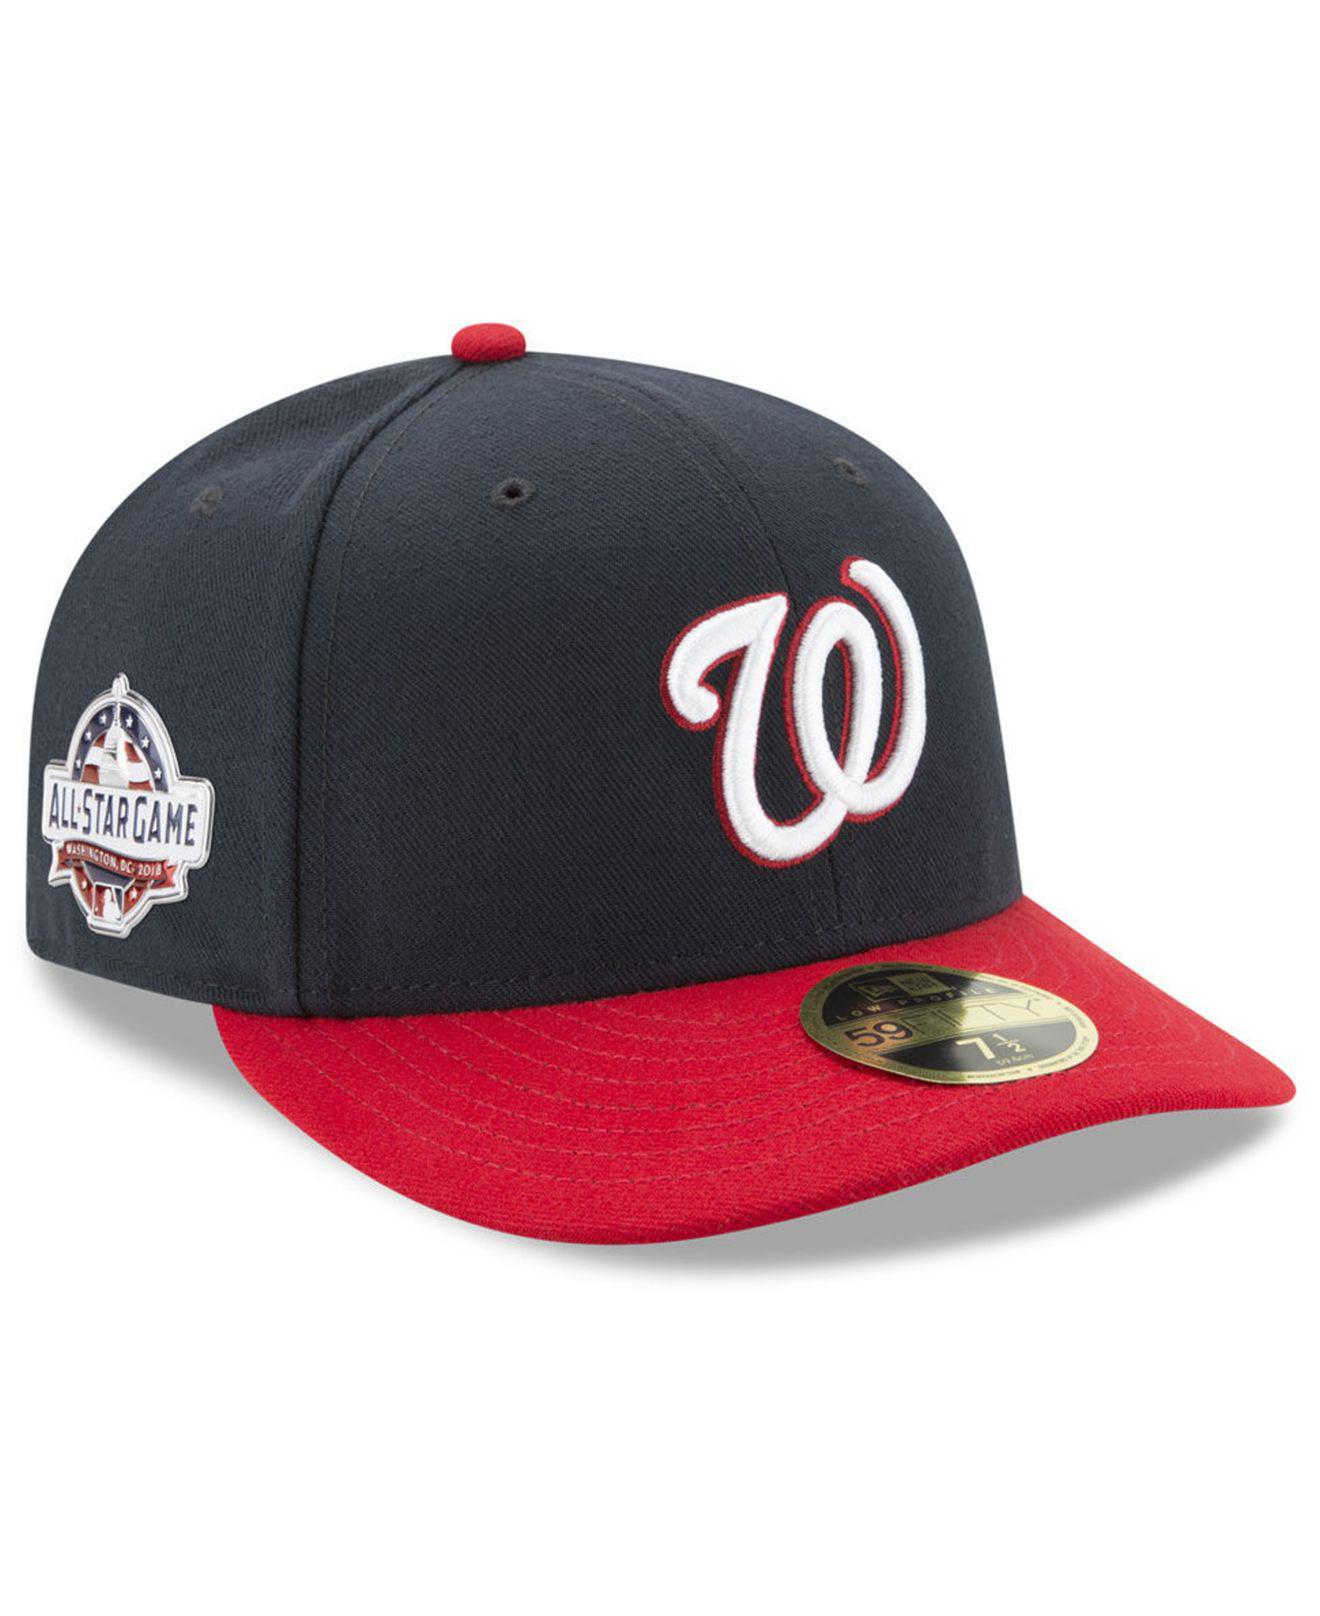 low priced a4540 b240b ... All Star Game Patch Low Profile 59fifty Fitted Cap for. View fullscreen